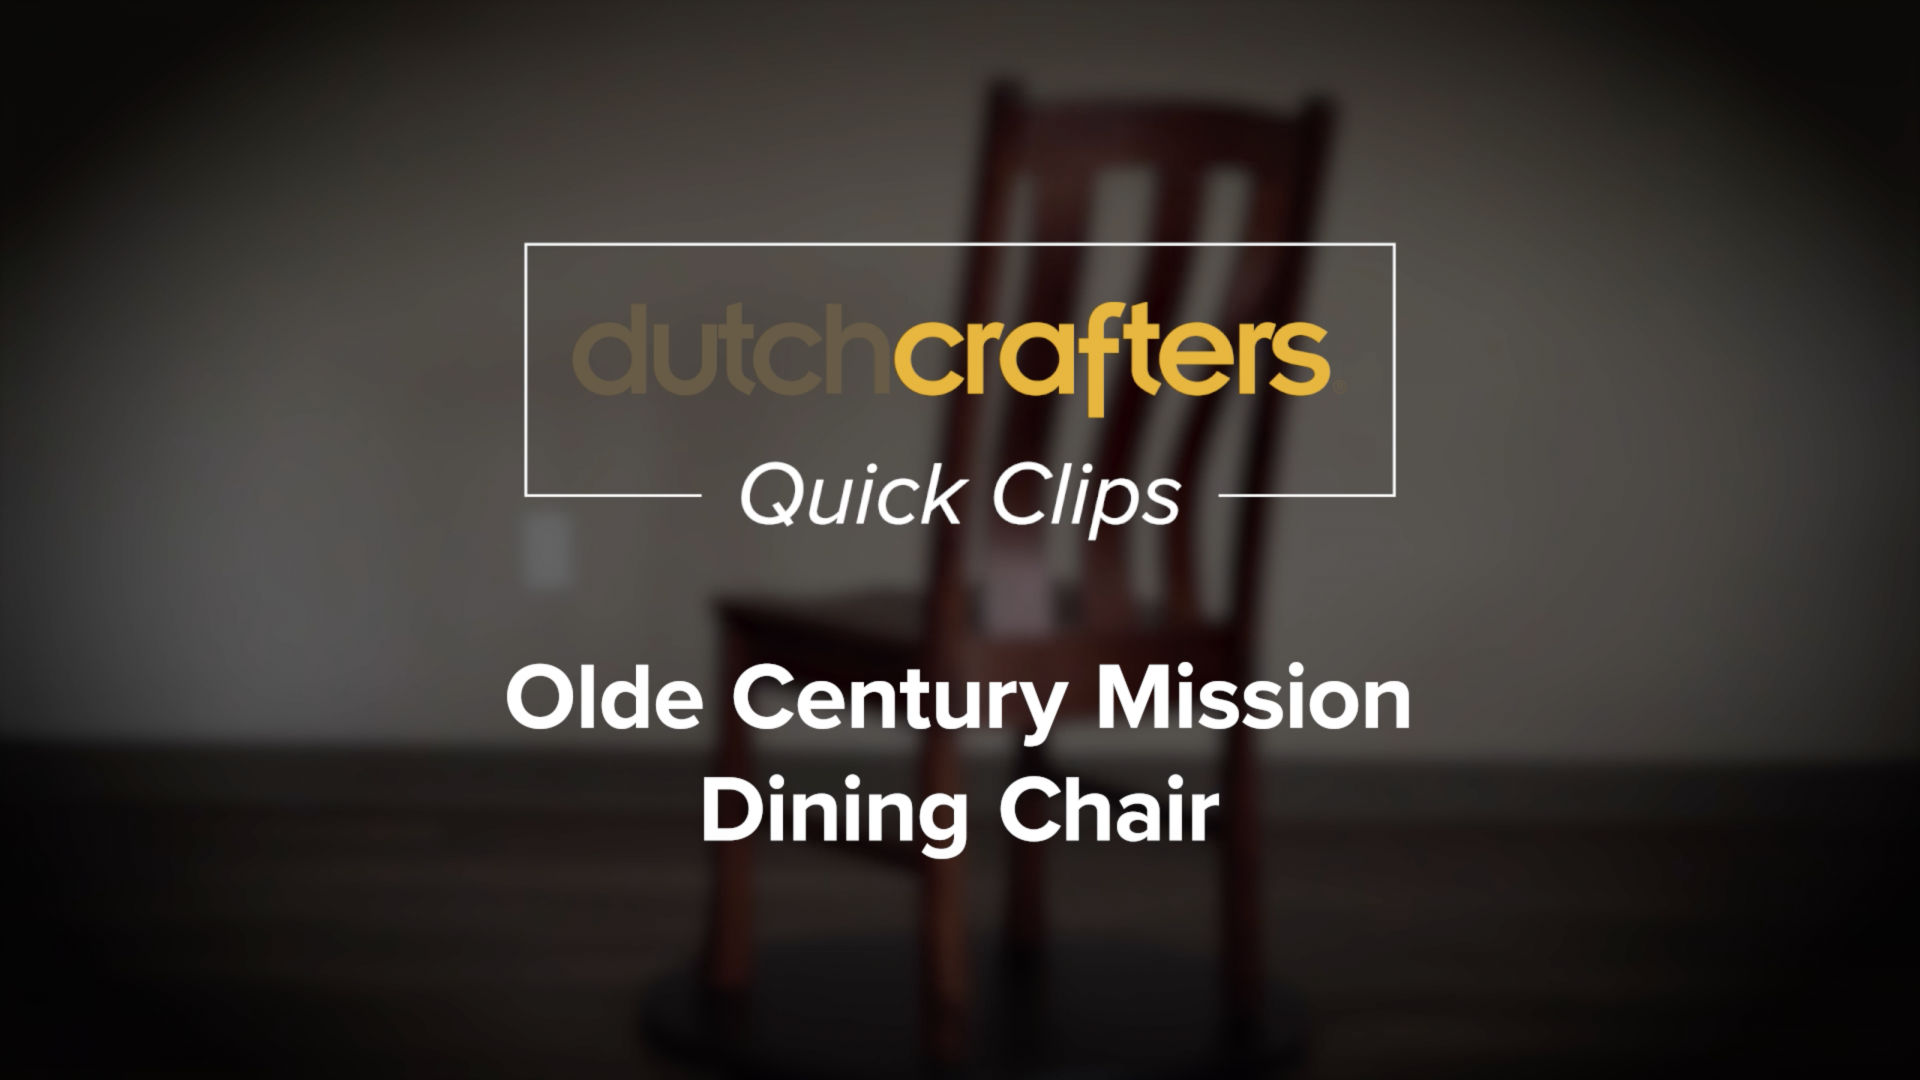 Olde Century Mission Dining Chair Video Title